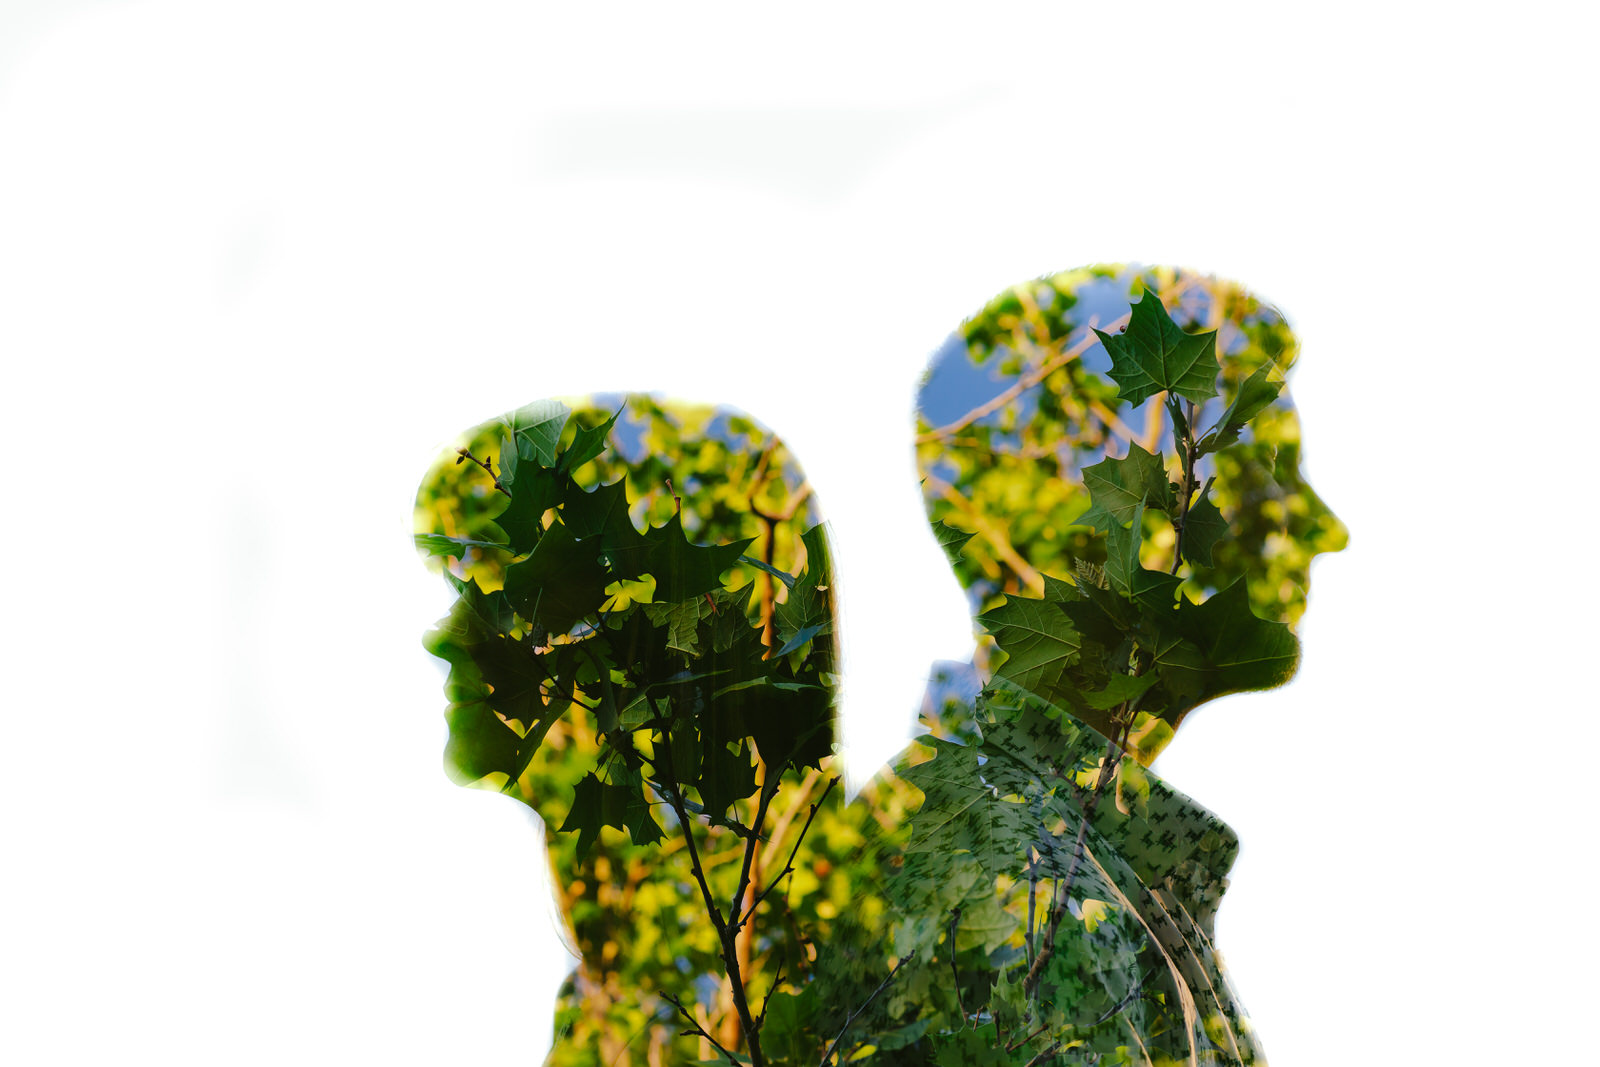 earth-day-engagement-session-tiny-house-photo-double-exposure.jpg